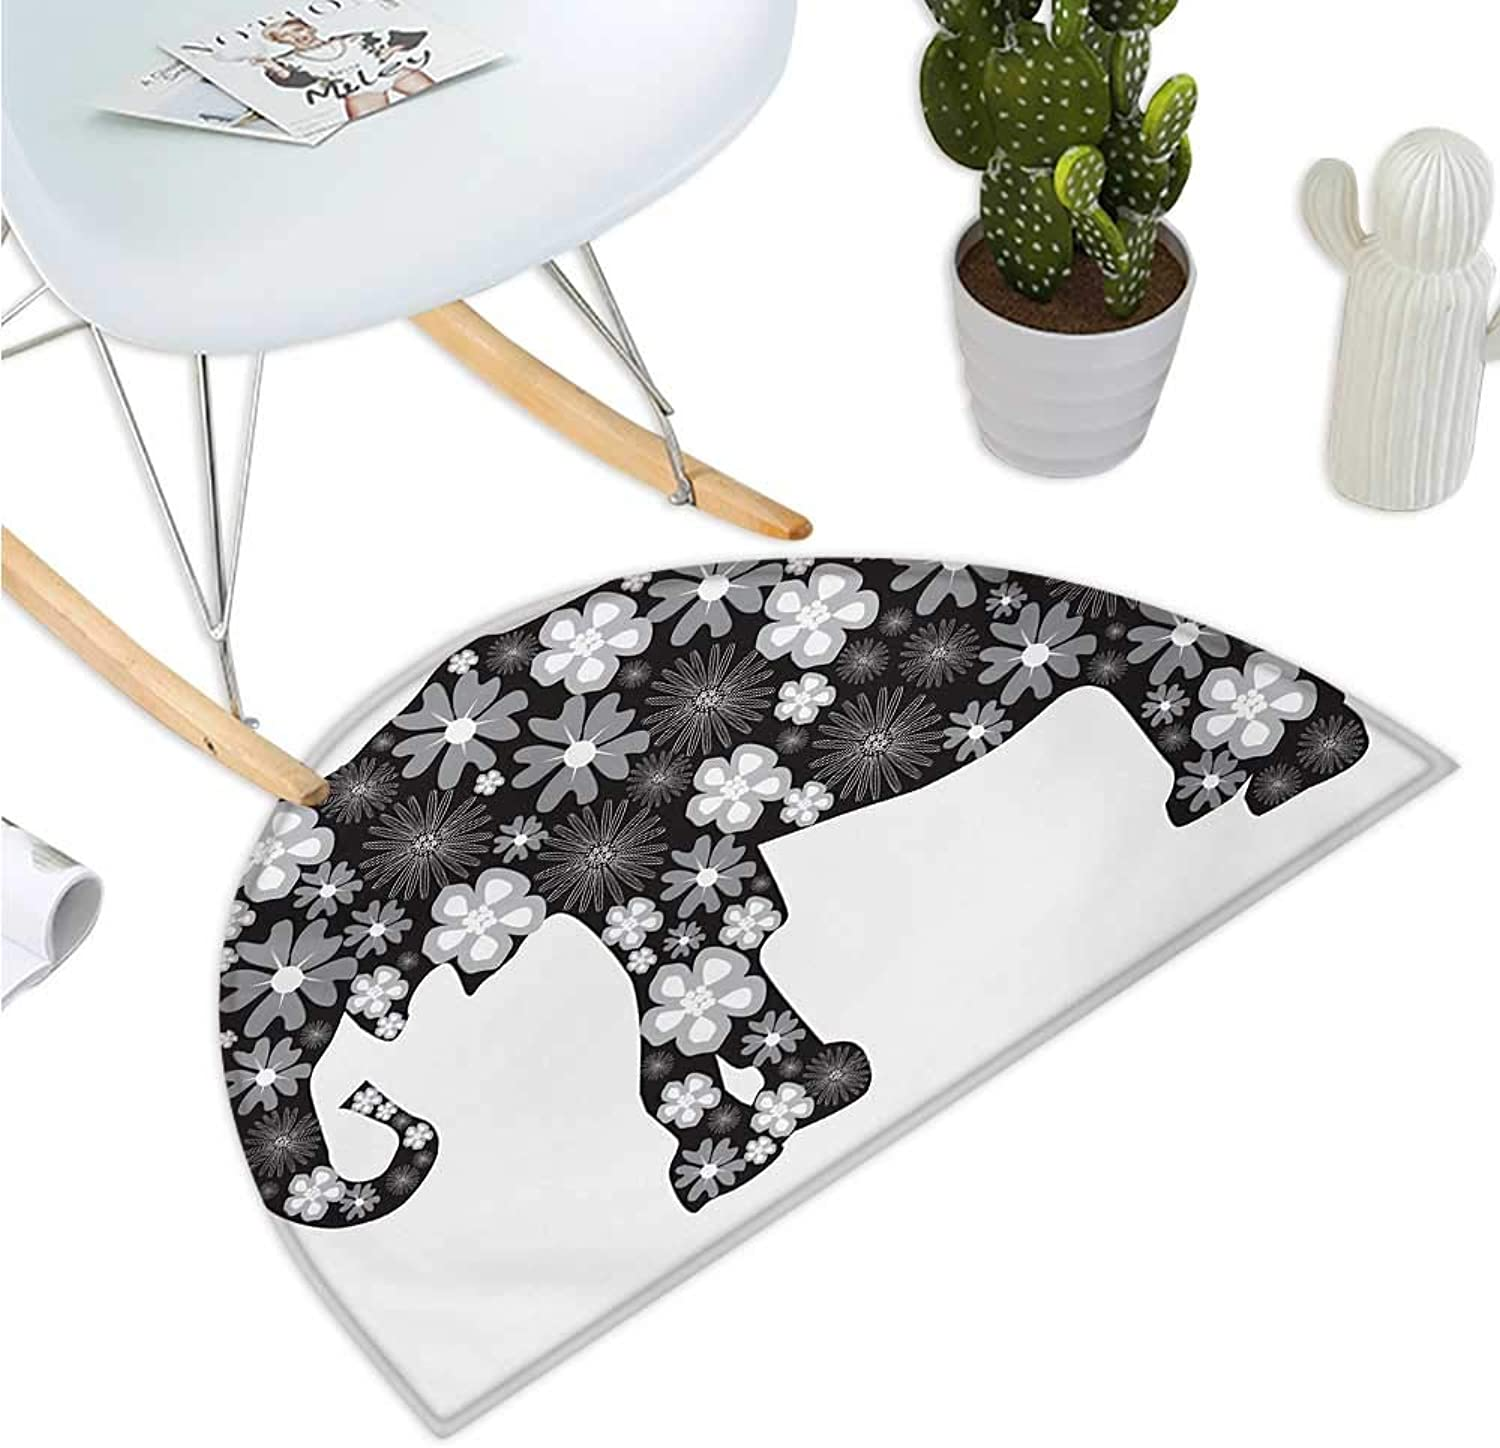 Animal Semicircular Cushion Floral Elephant Pattern with Flower Petals on The Body Tropical Boho Style Zoo Image Entry Door Mat H 51.1  xD 76.7  Grey White